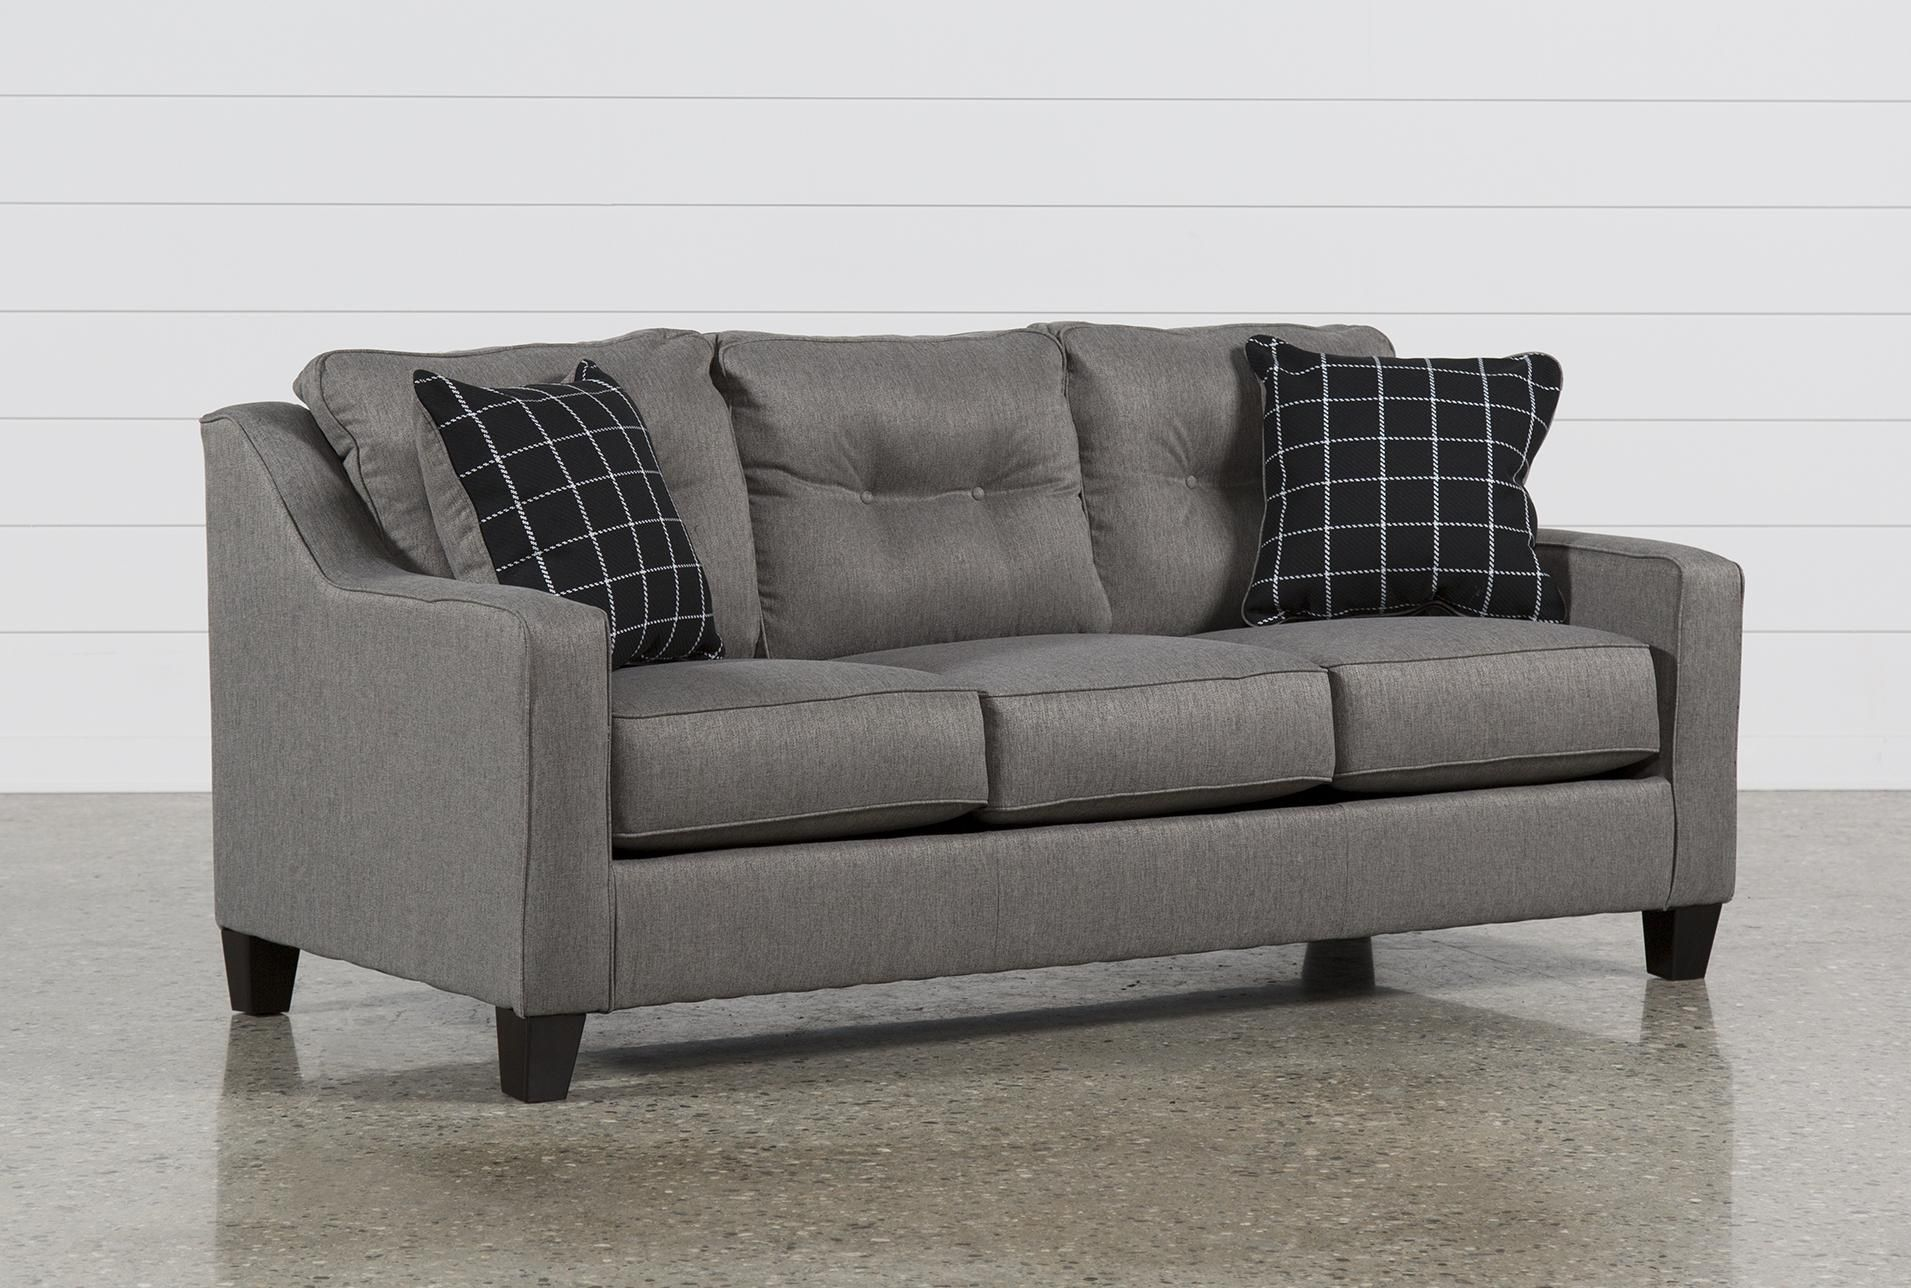 Ashley Queen Sofa Sleeper, Brindon Charcoal, Grey